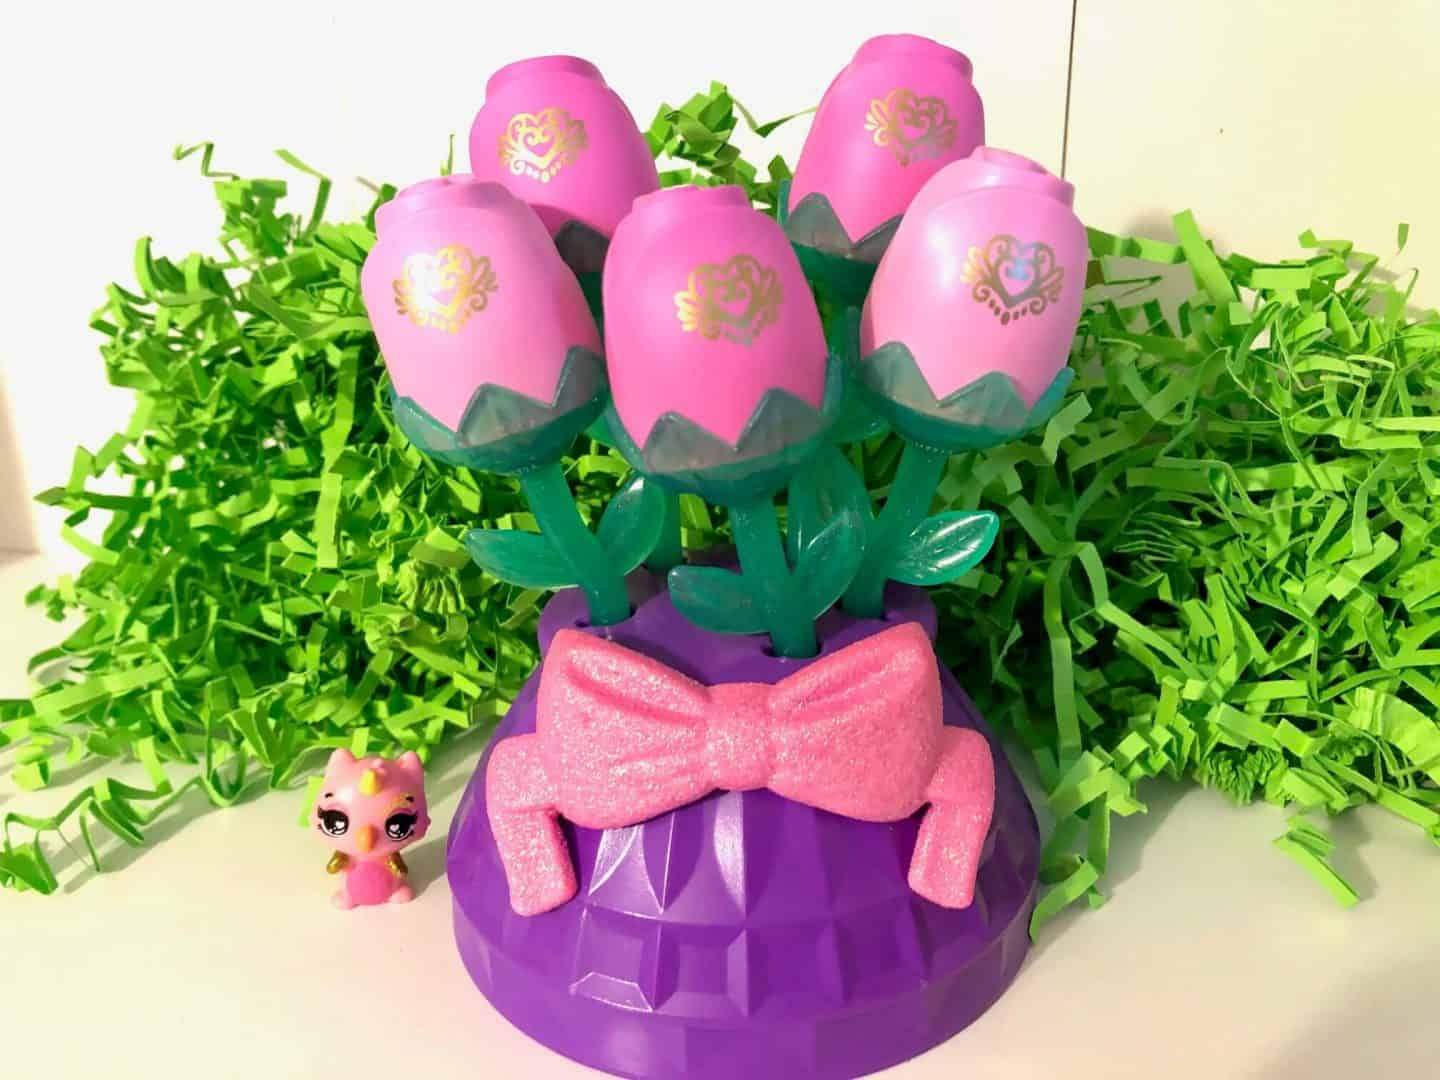 Spring Bouquet Review - Hatchimals CollEGGtibles